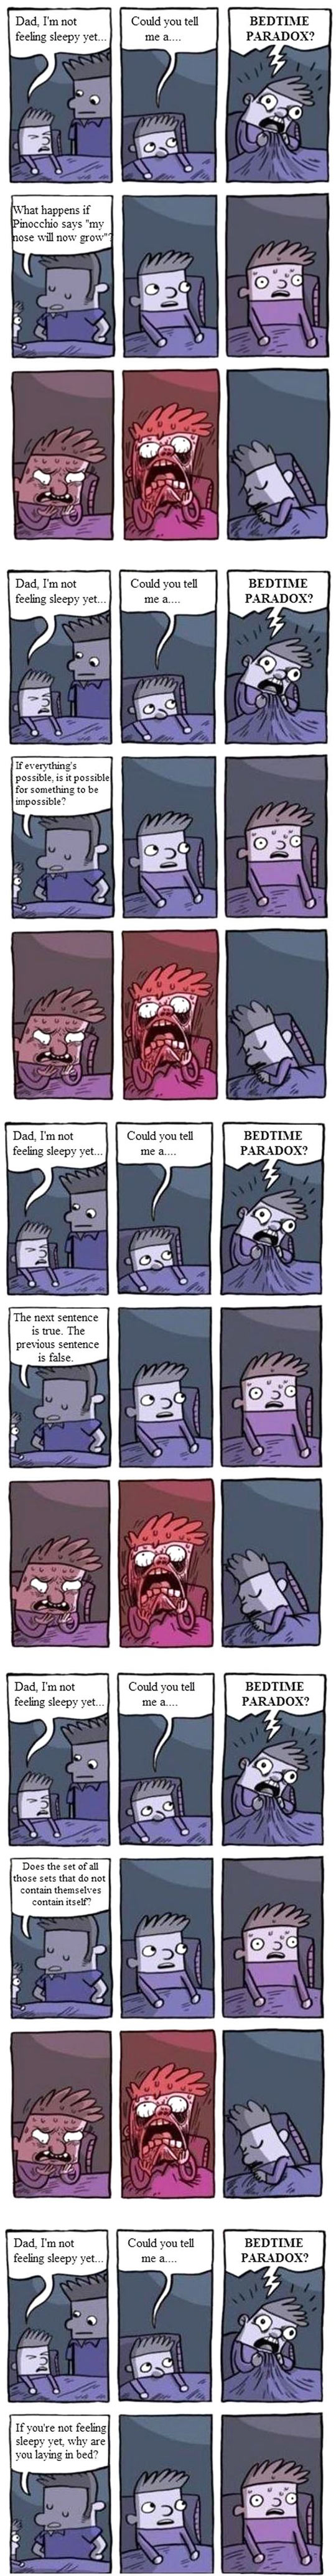 Tell Me A Bedtime Paradox